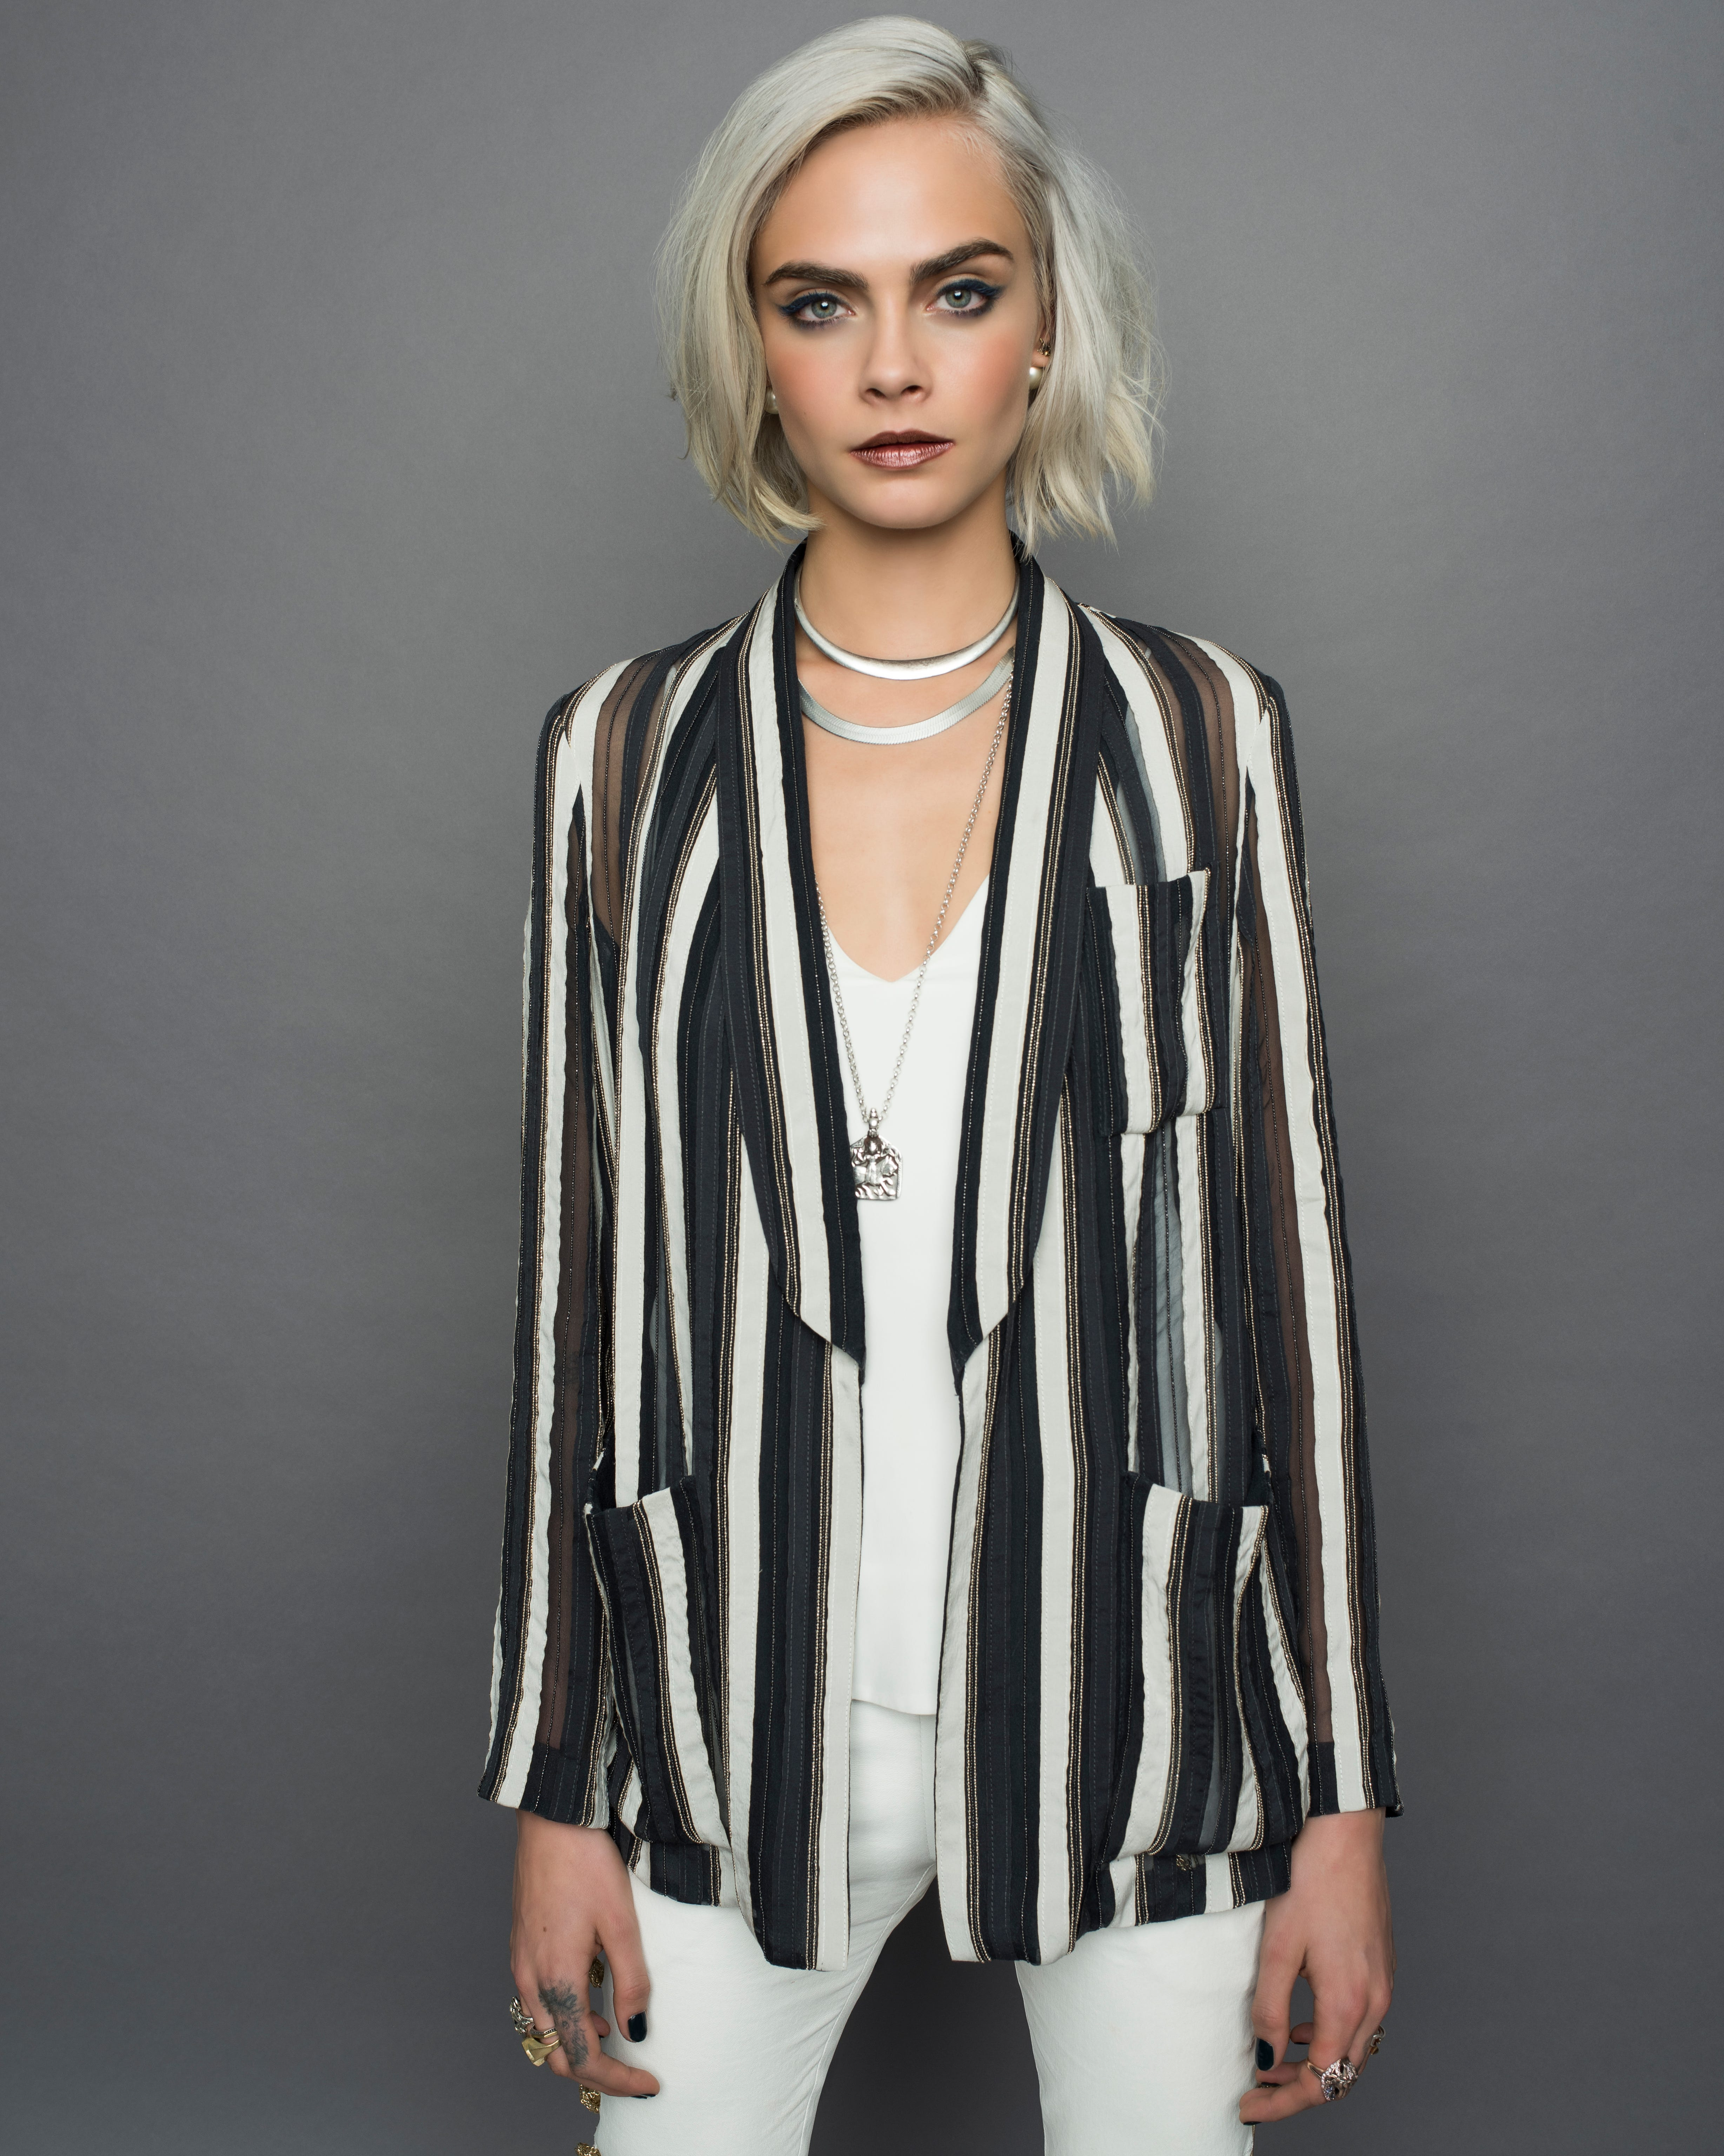 Pic Cara Delevingne naked (35 photos), Topless, Paparazzi, Selfie, cleavage 2020